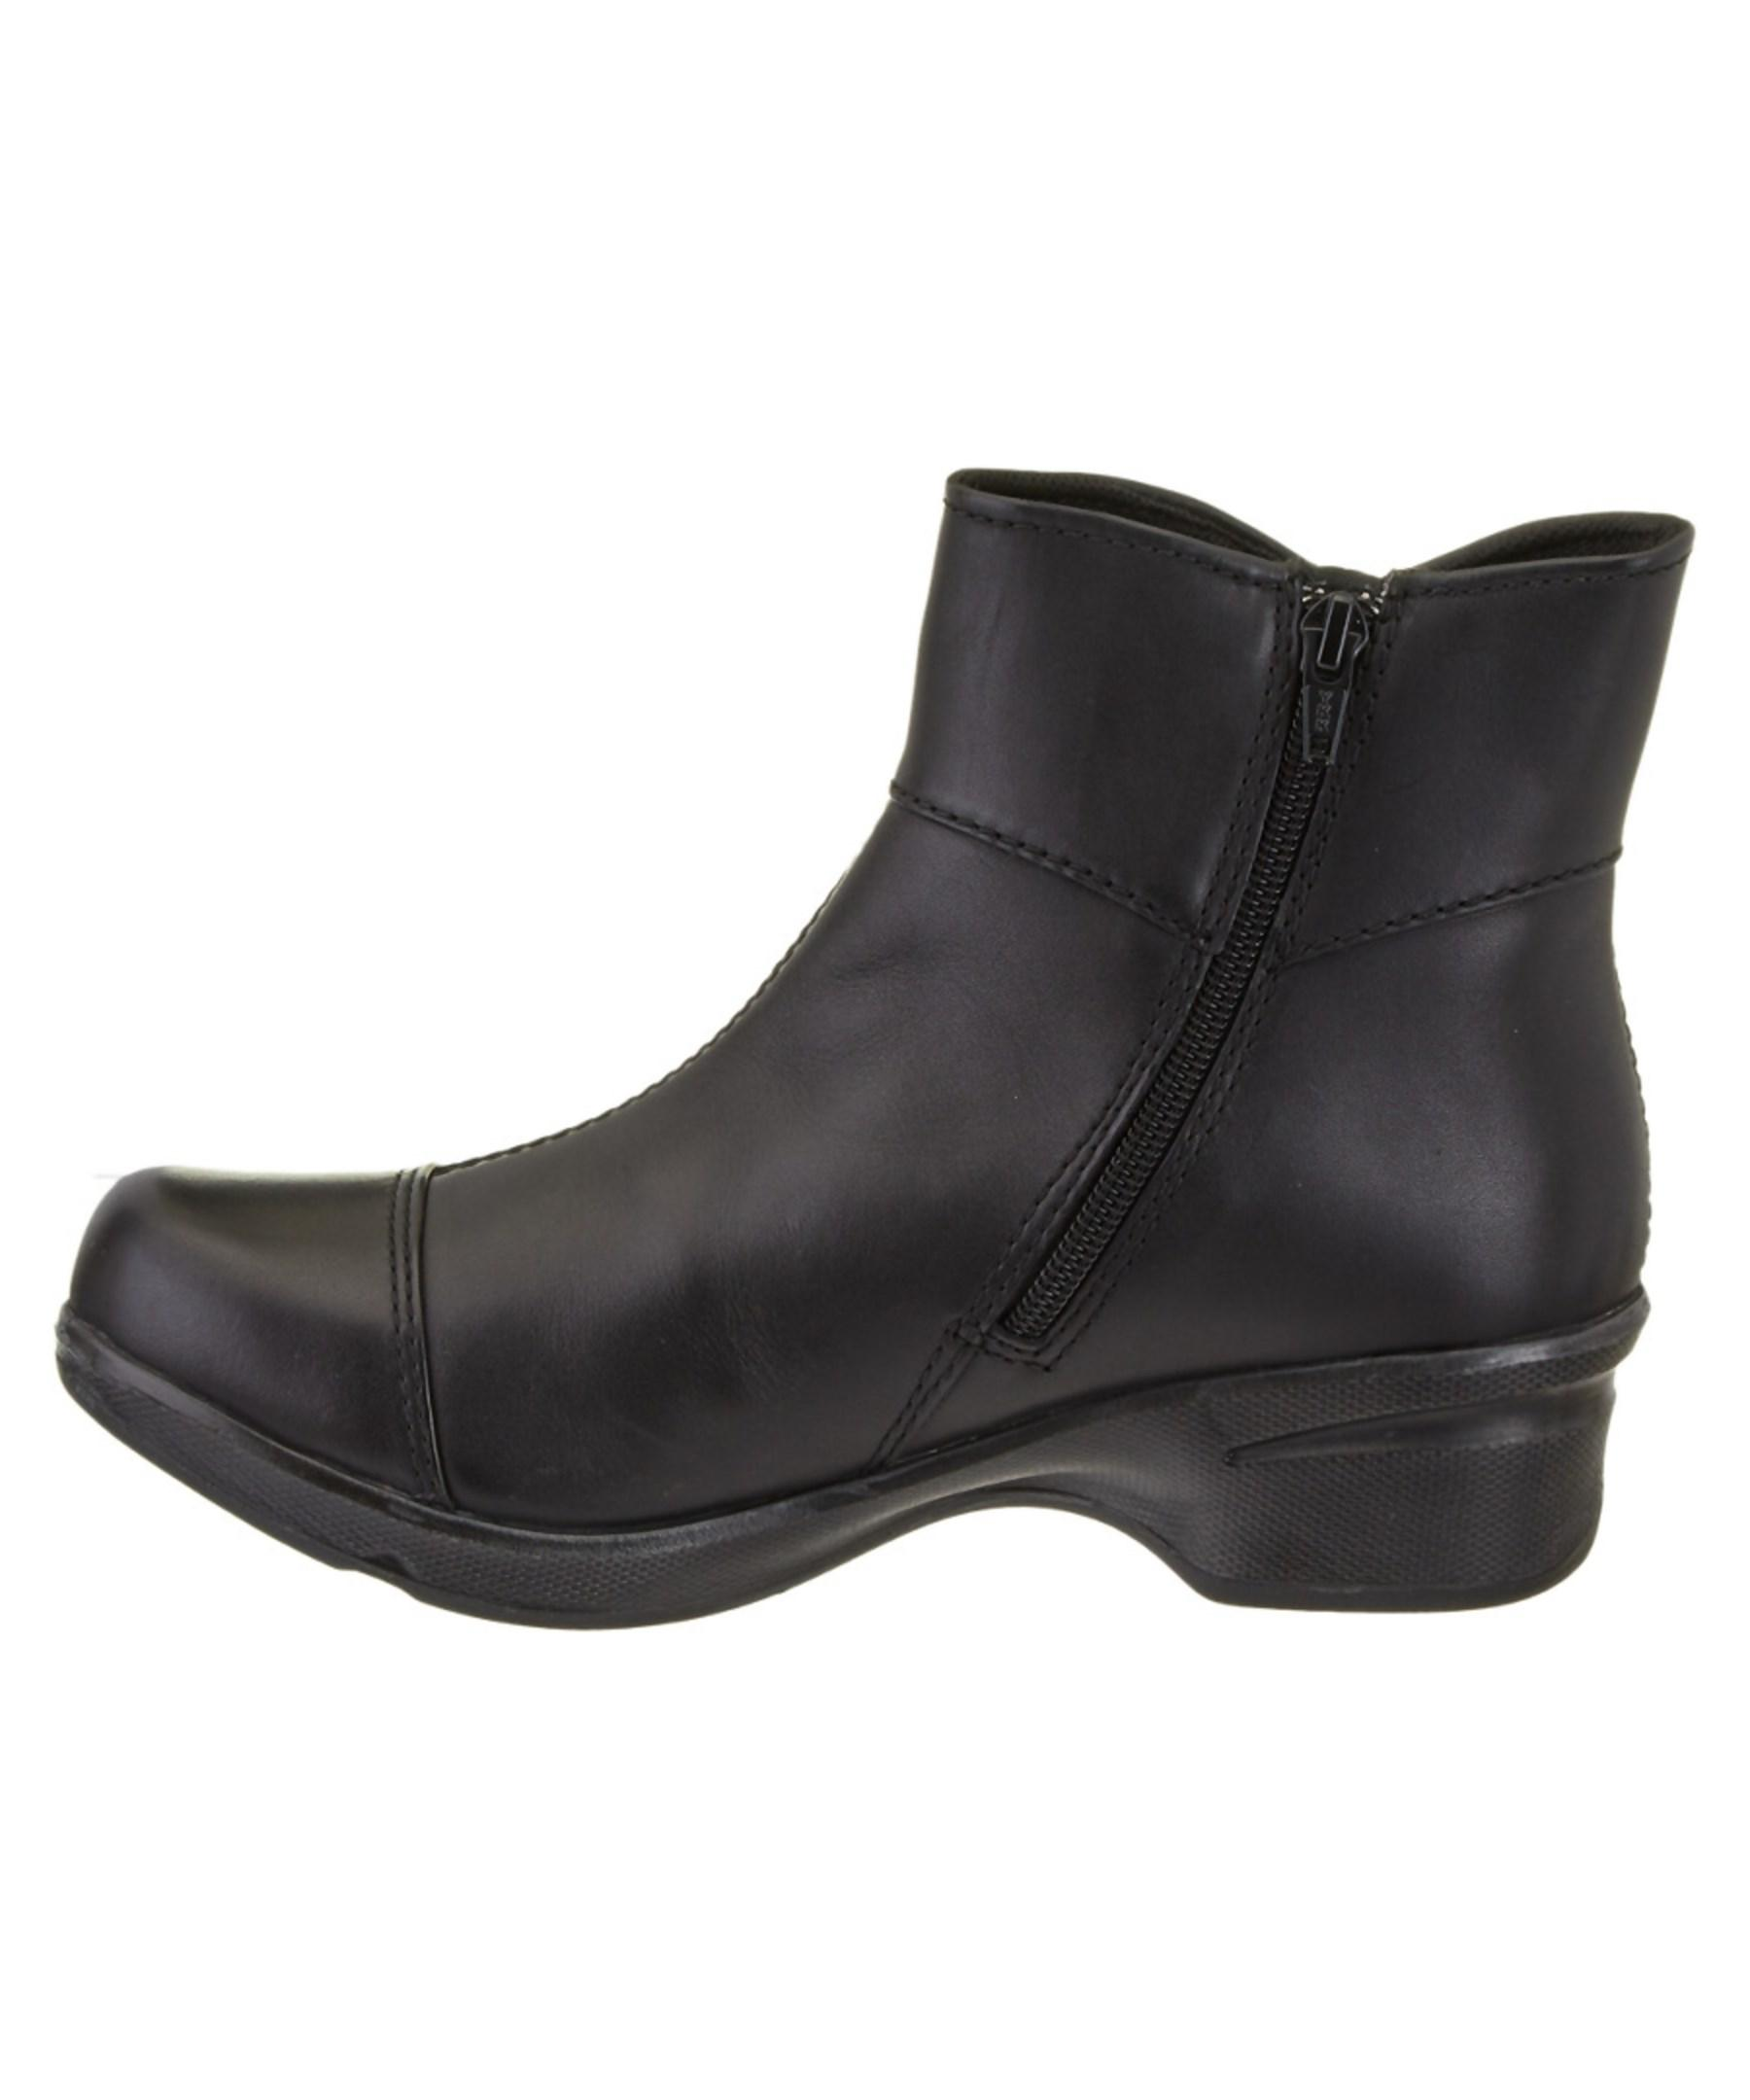 keen s mora mid button leather boot in black lyst